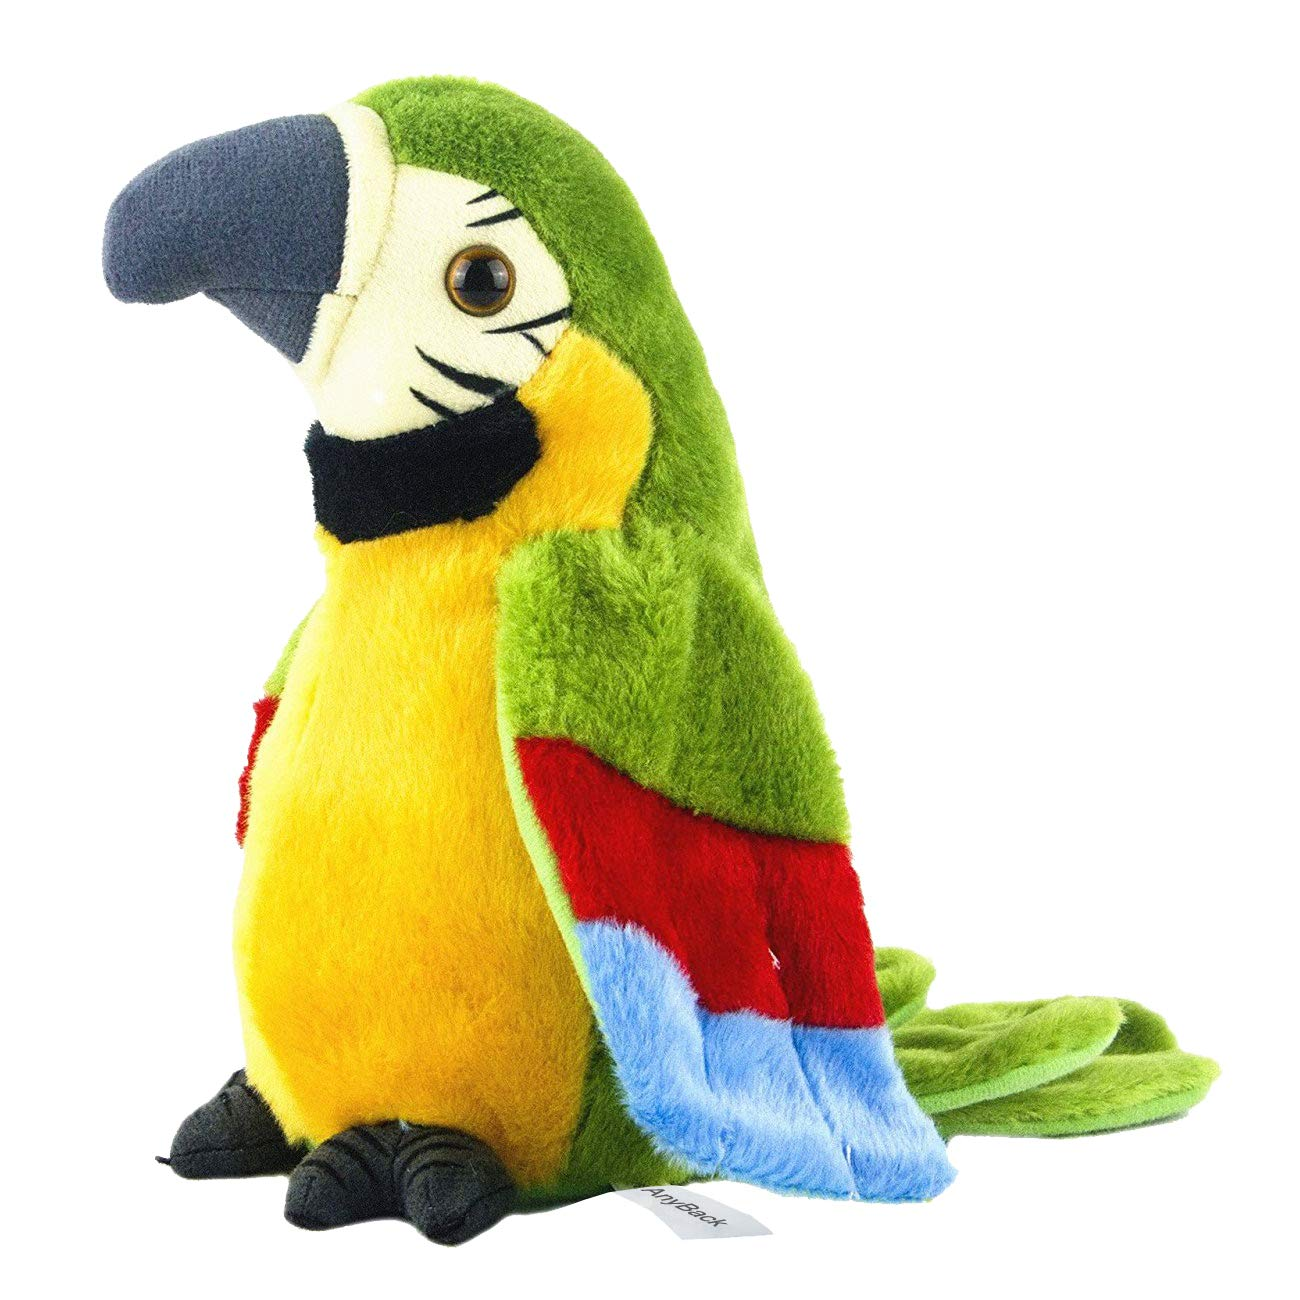 AnyBack Talking Parrot, Electronic Stuffed Plush Animals Pets Toys, Electric Plush Cute Mimicry Pet Animal Repeating Toy Stuffed Animals Toys for Kids Boys Girls Toddlers 1 Pack Green